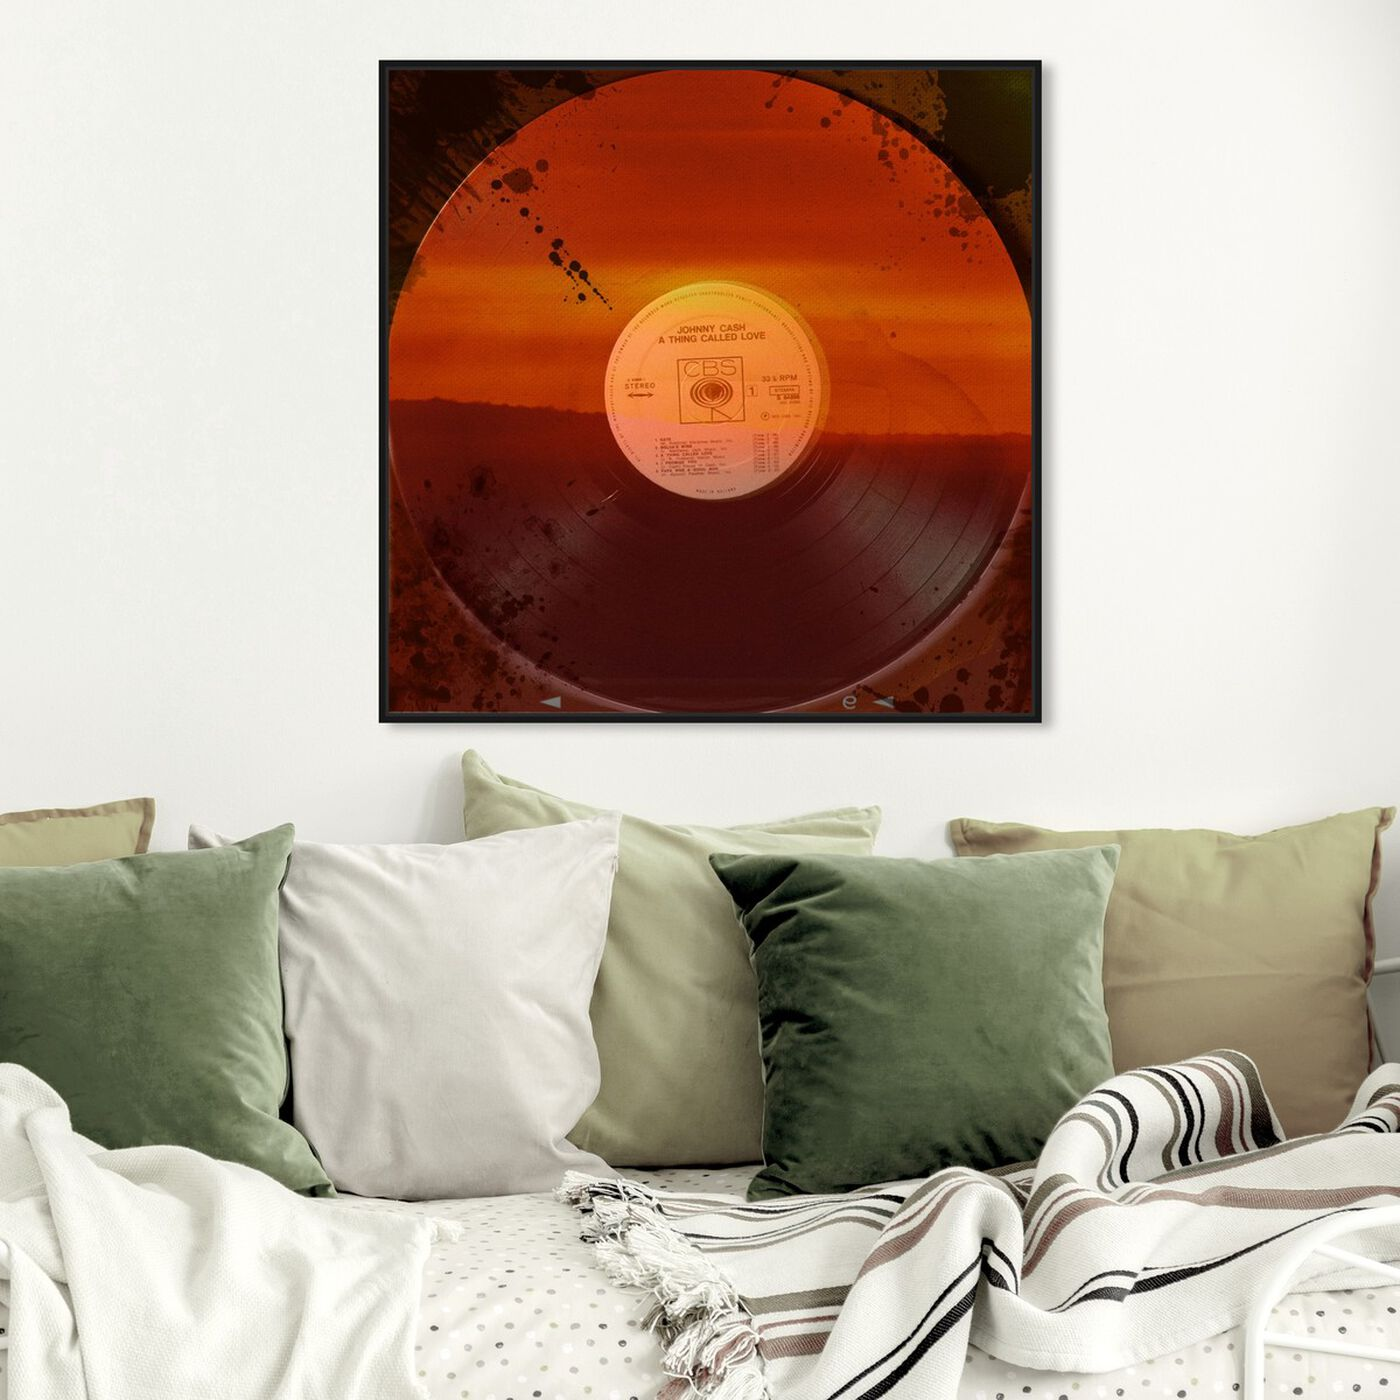 Hanging view of A Thing Called Love featuring music and dance and vinyl records art.